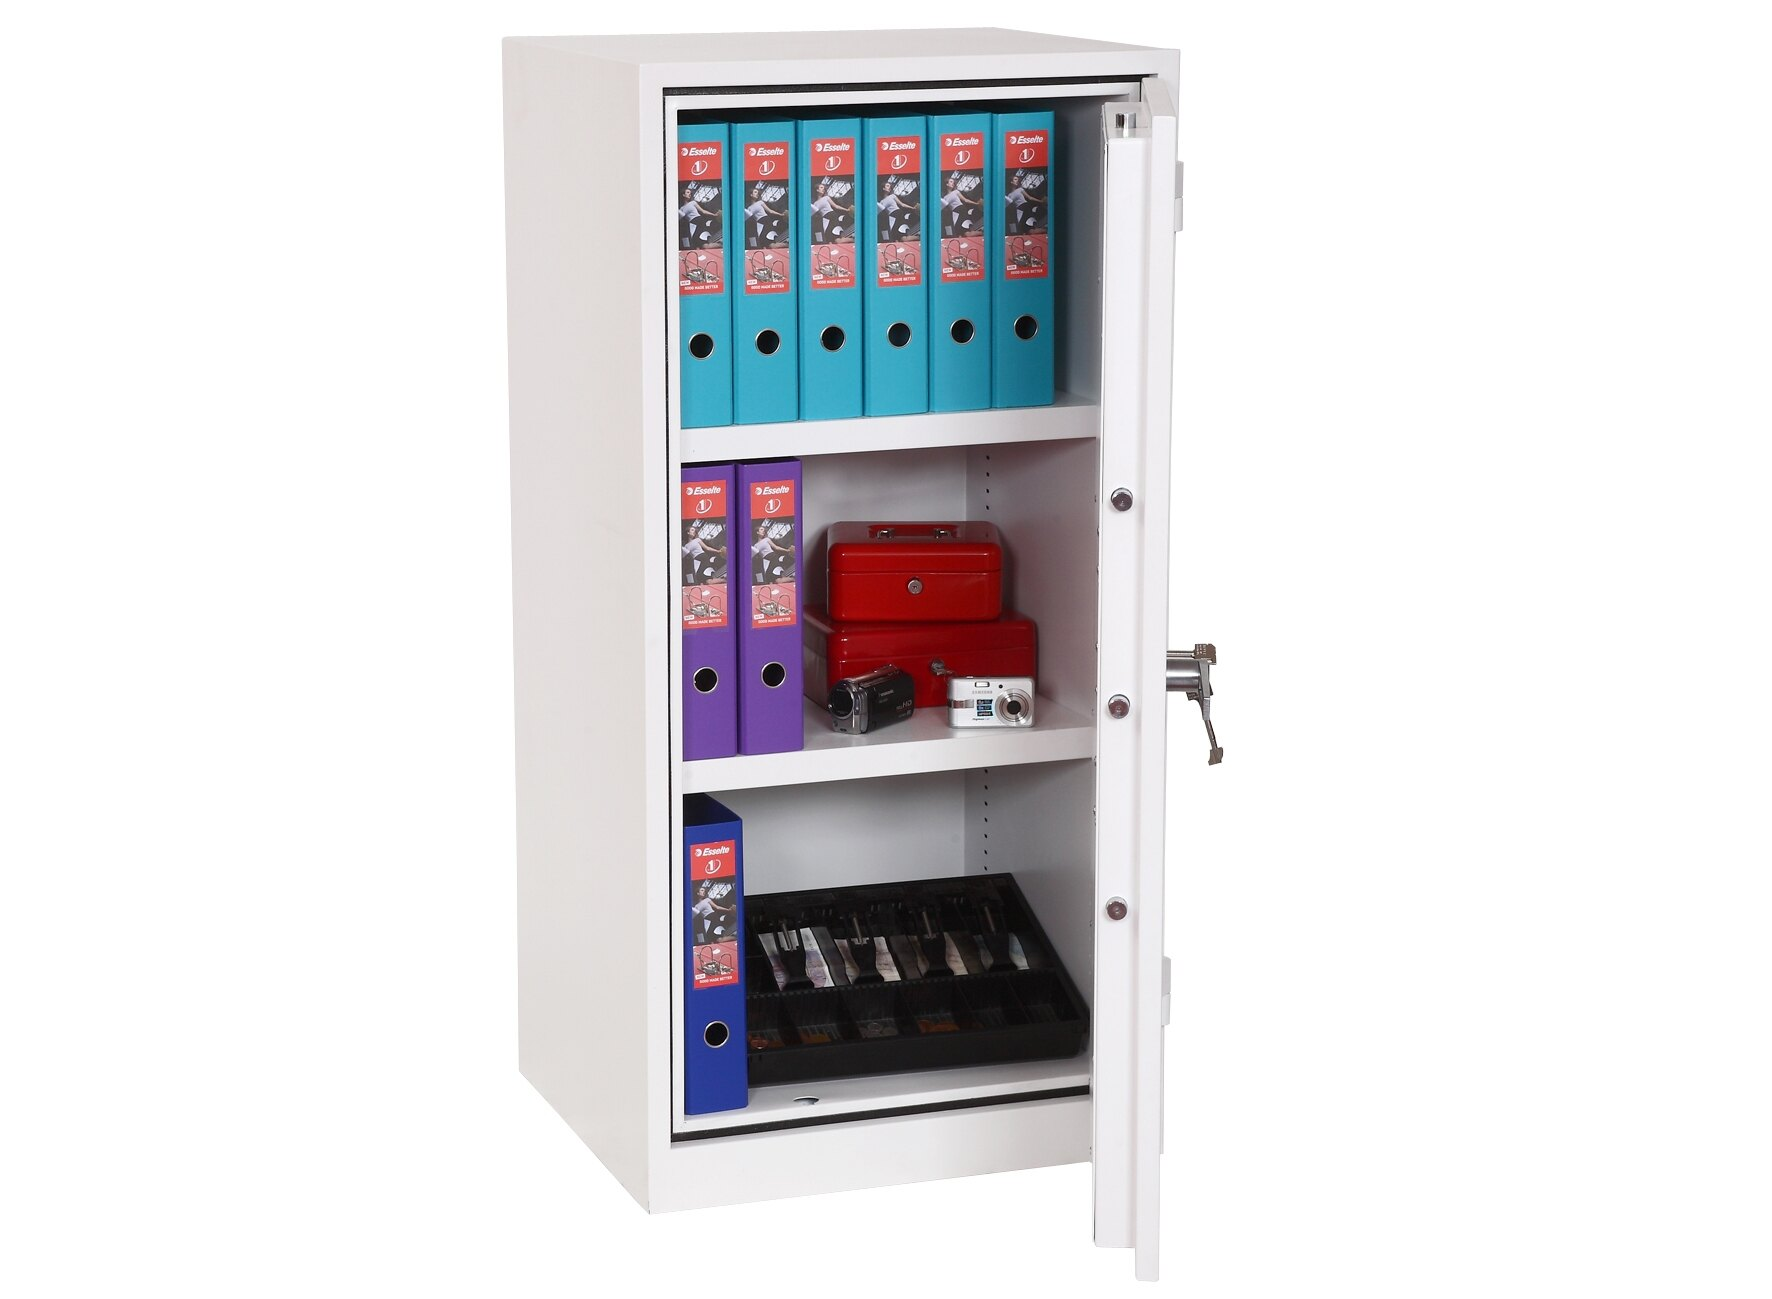 With 2 height adjustable shelves